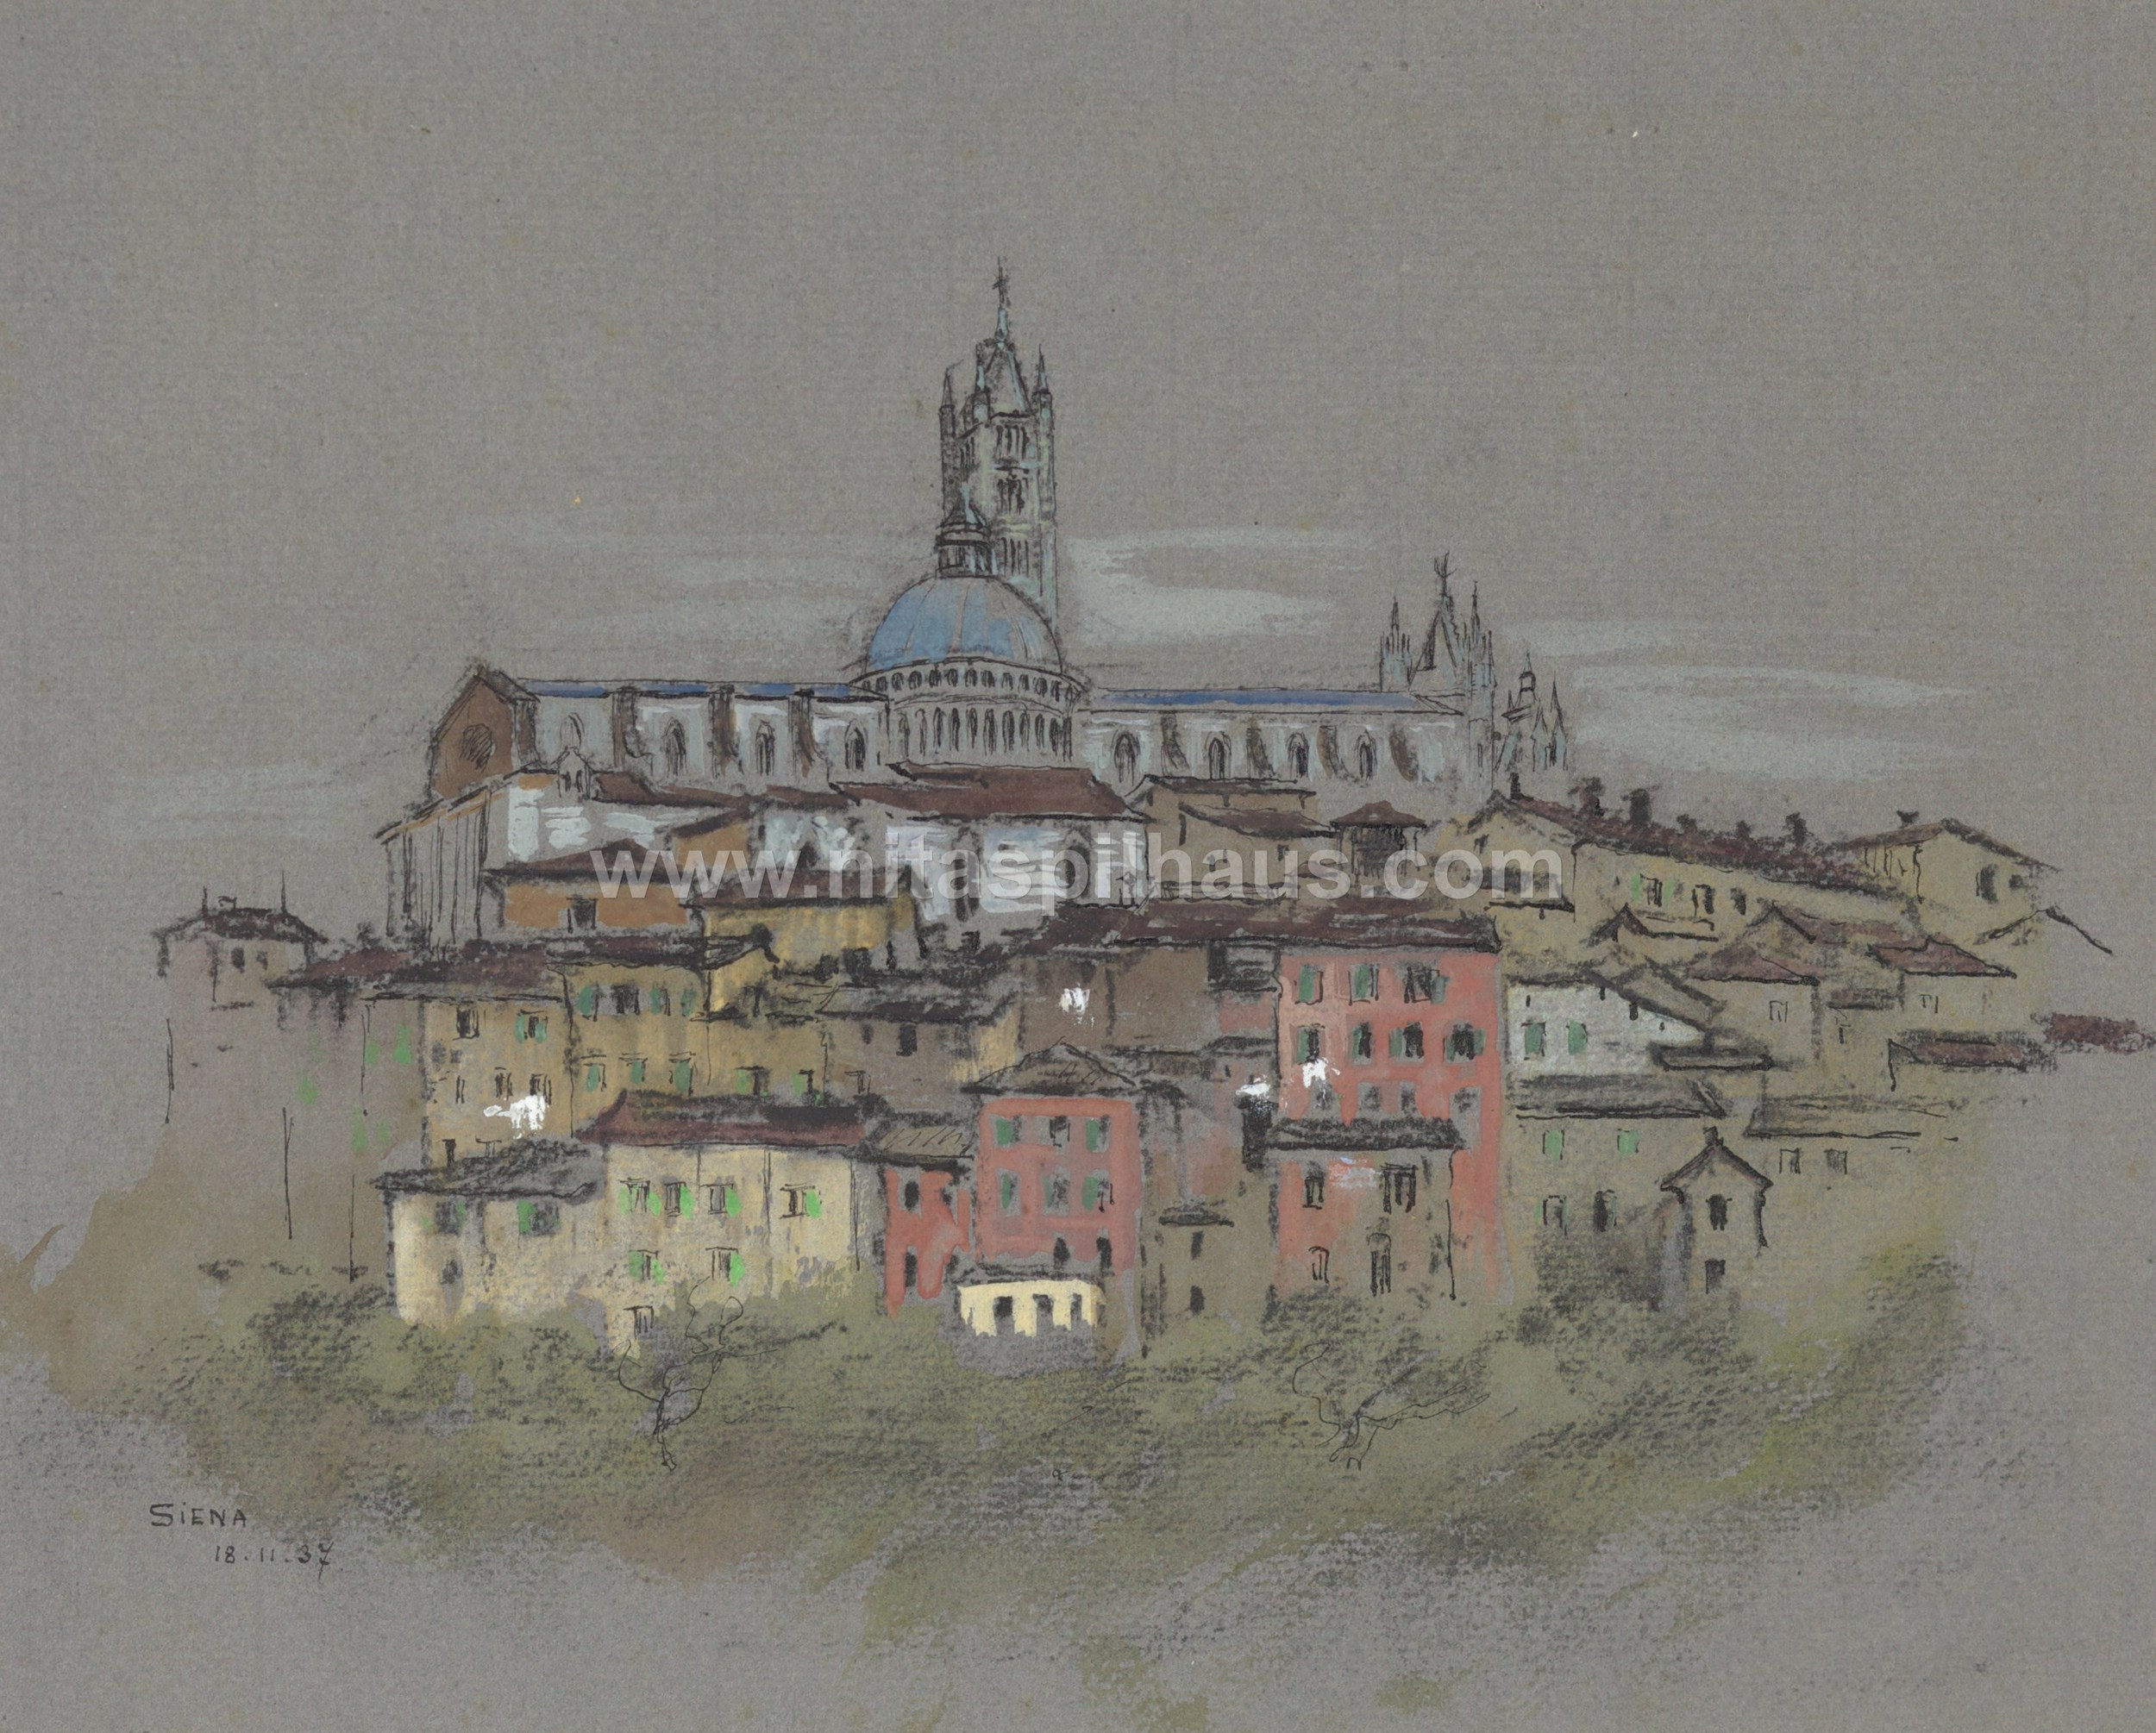 Siena 18-11-37, pastel,  22.2 x 26 Collector 36